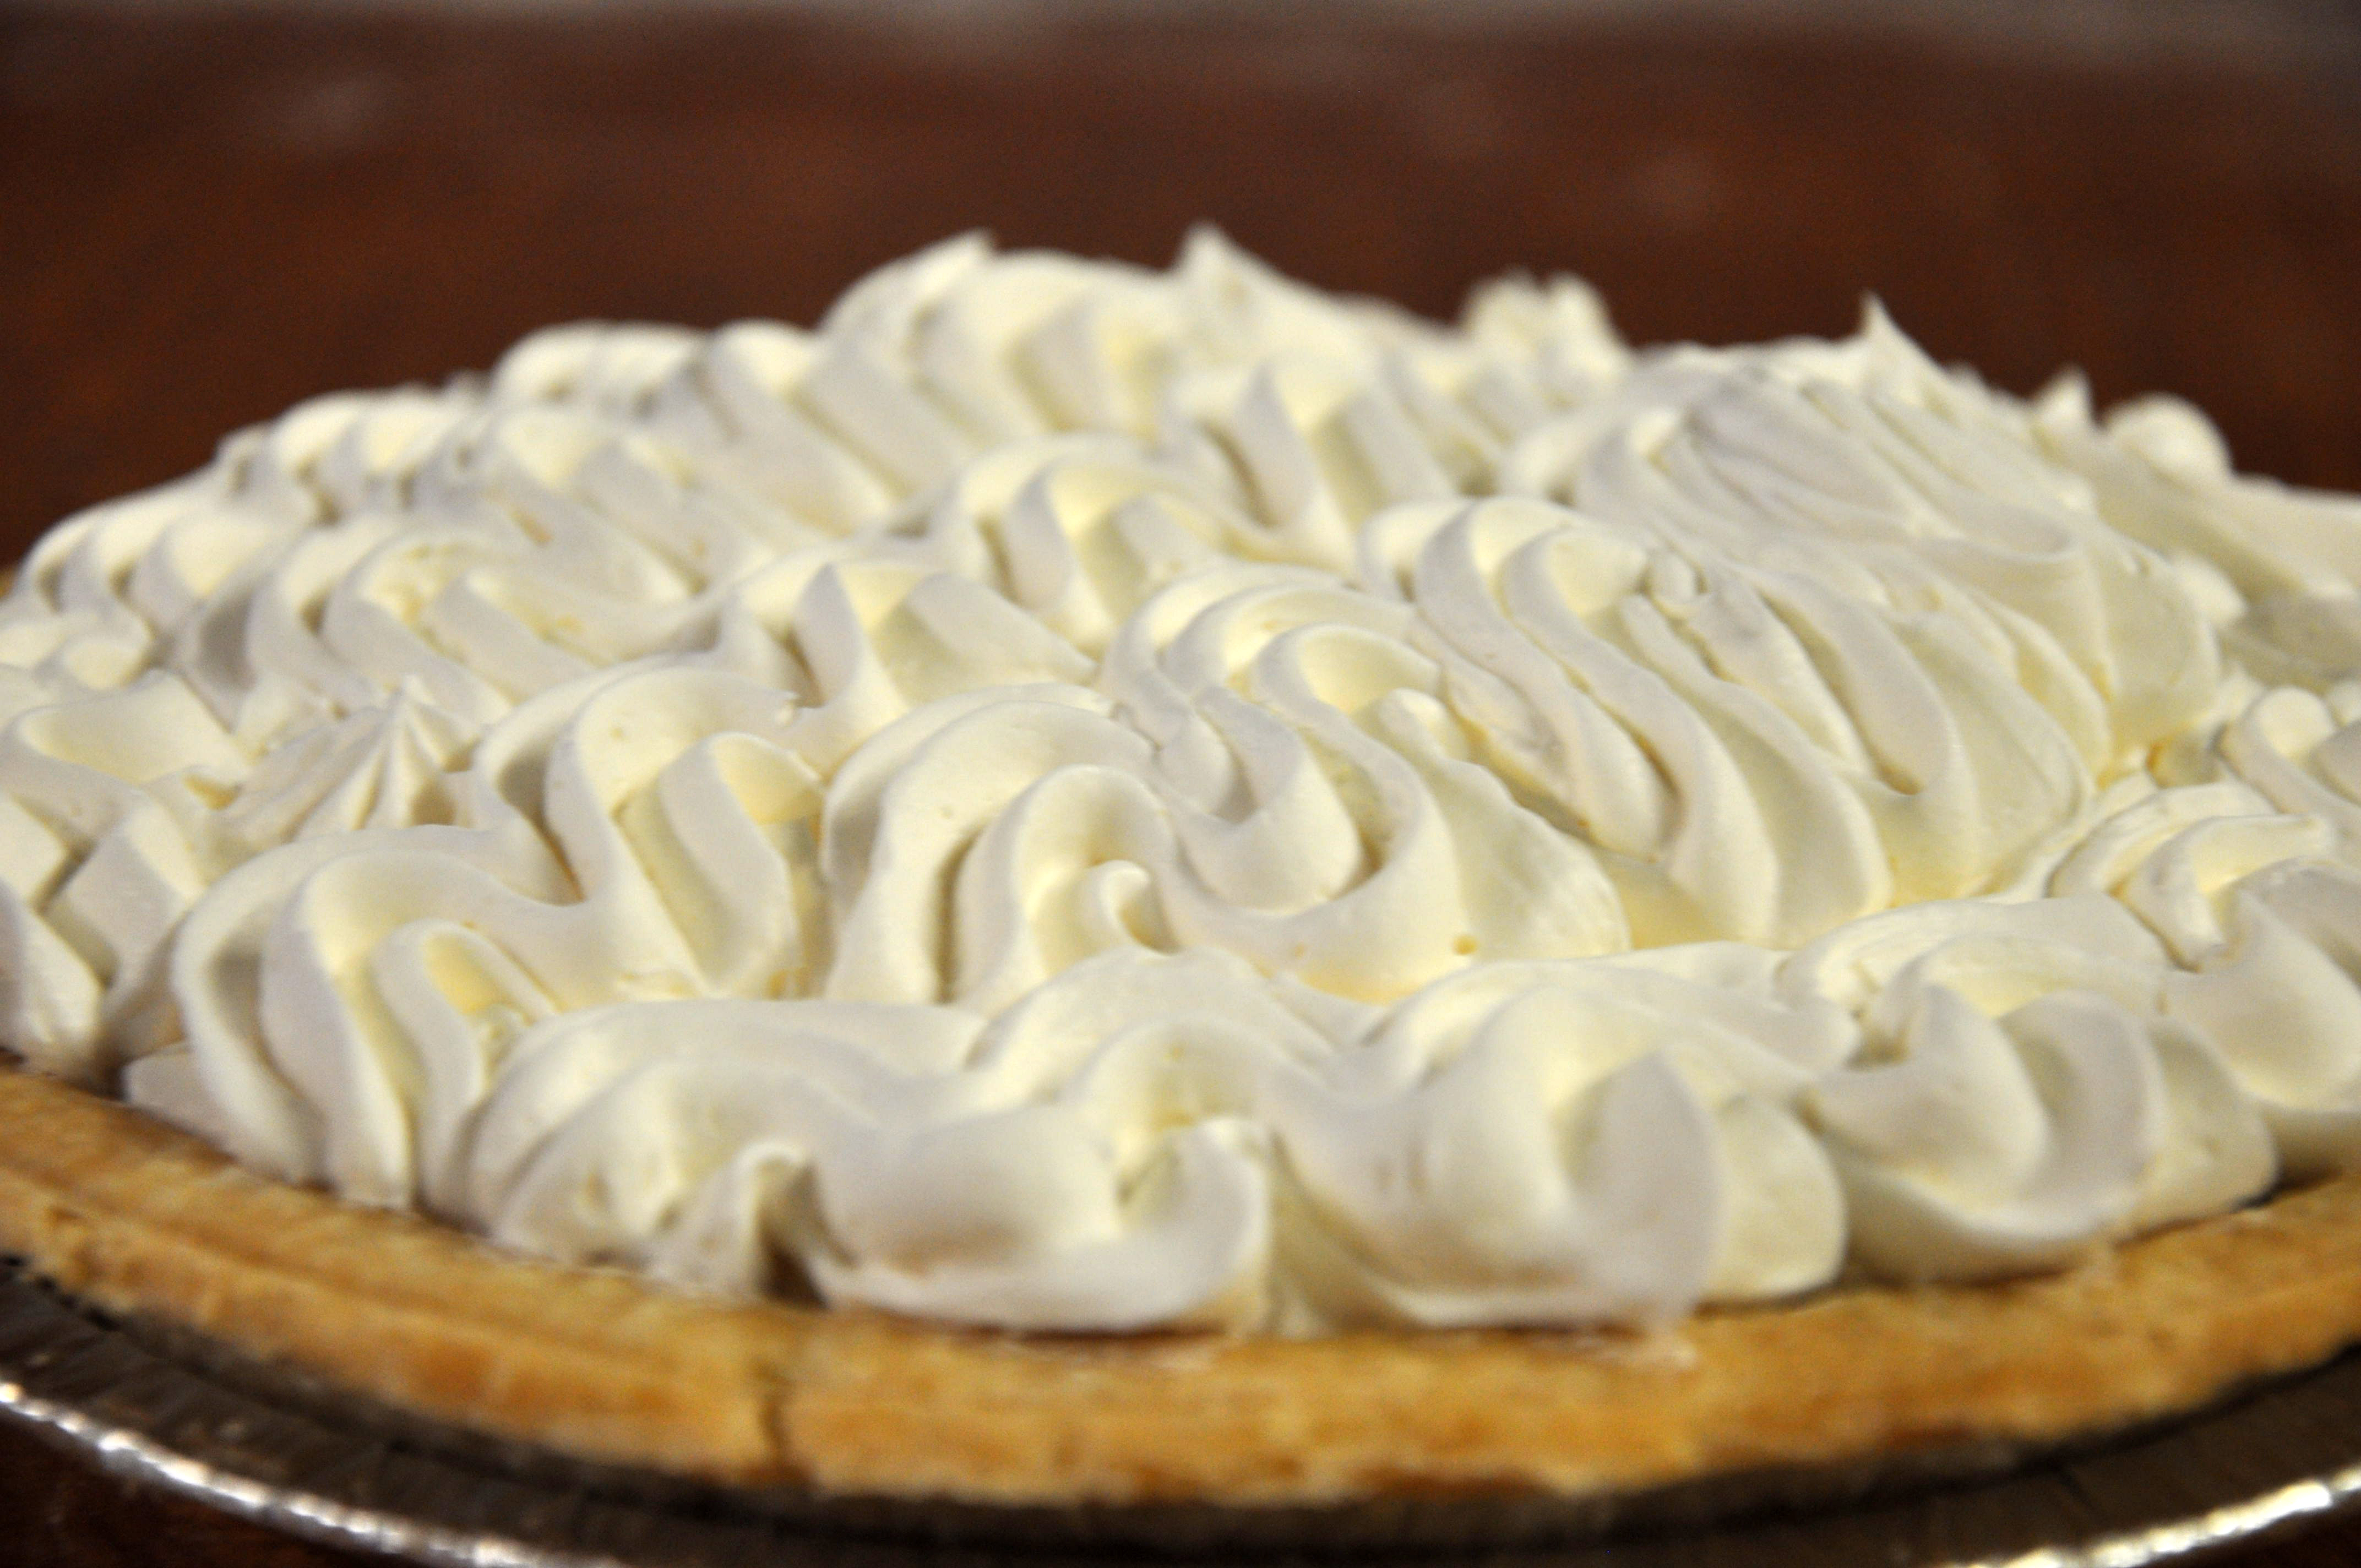 Crosby chocolate cream pie